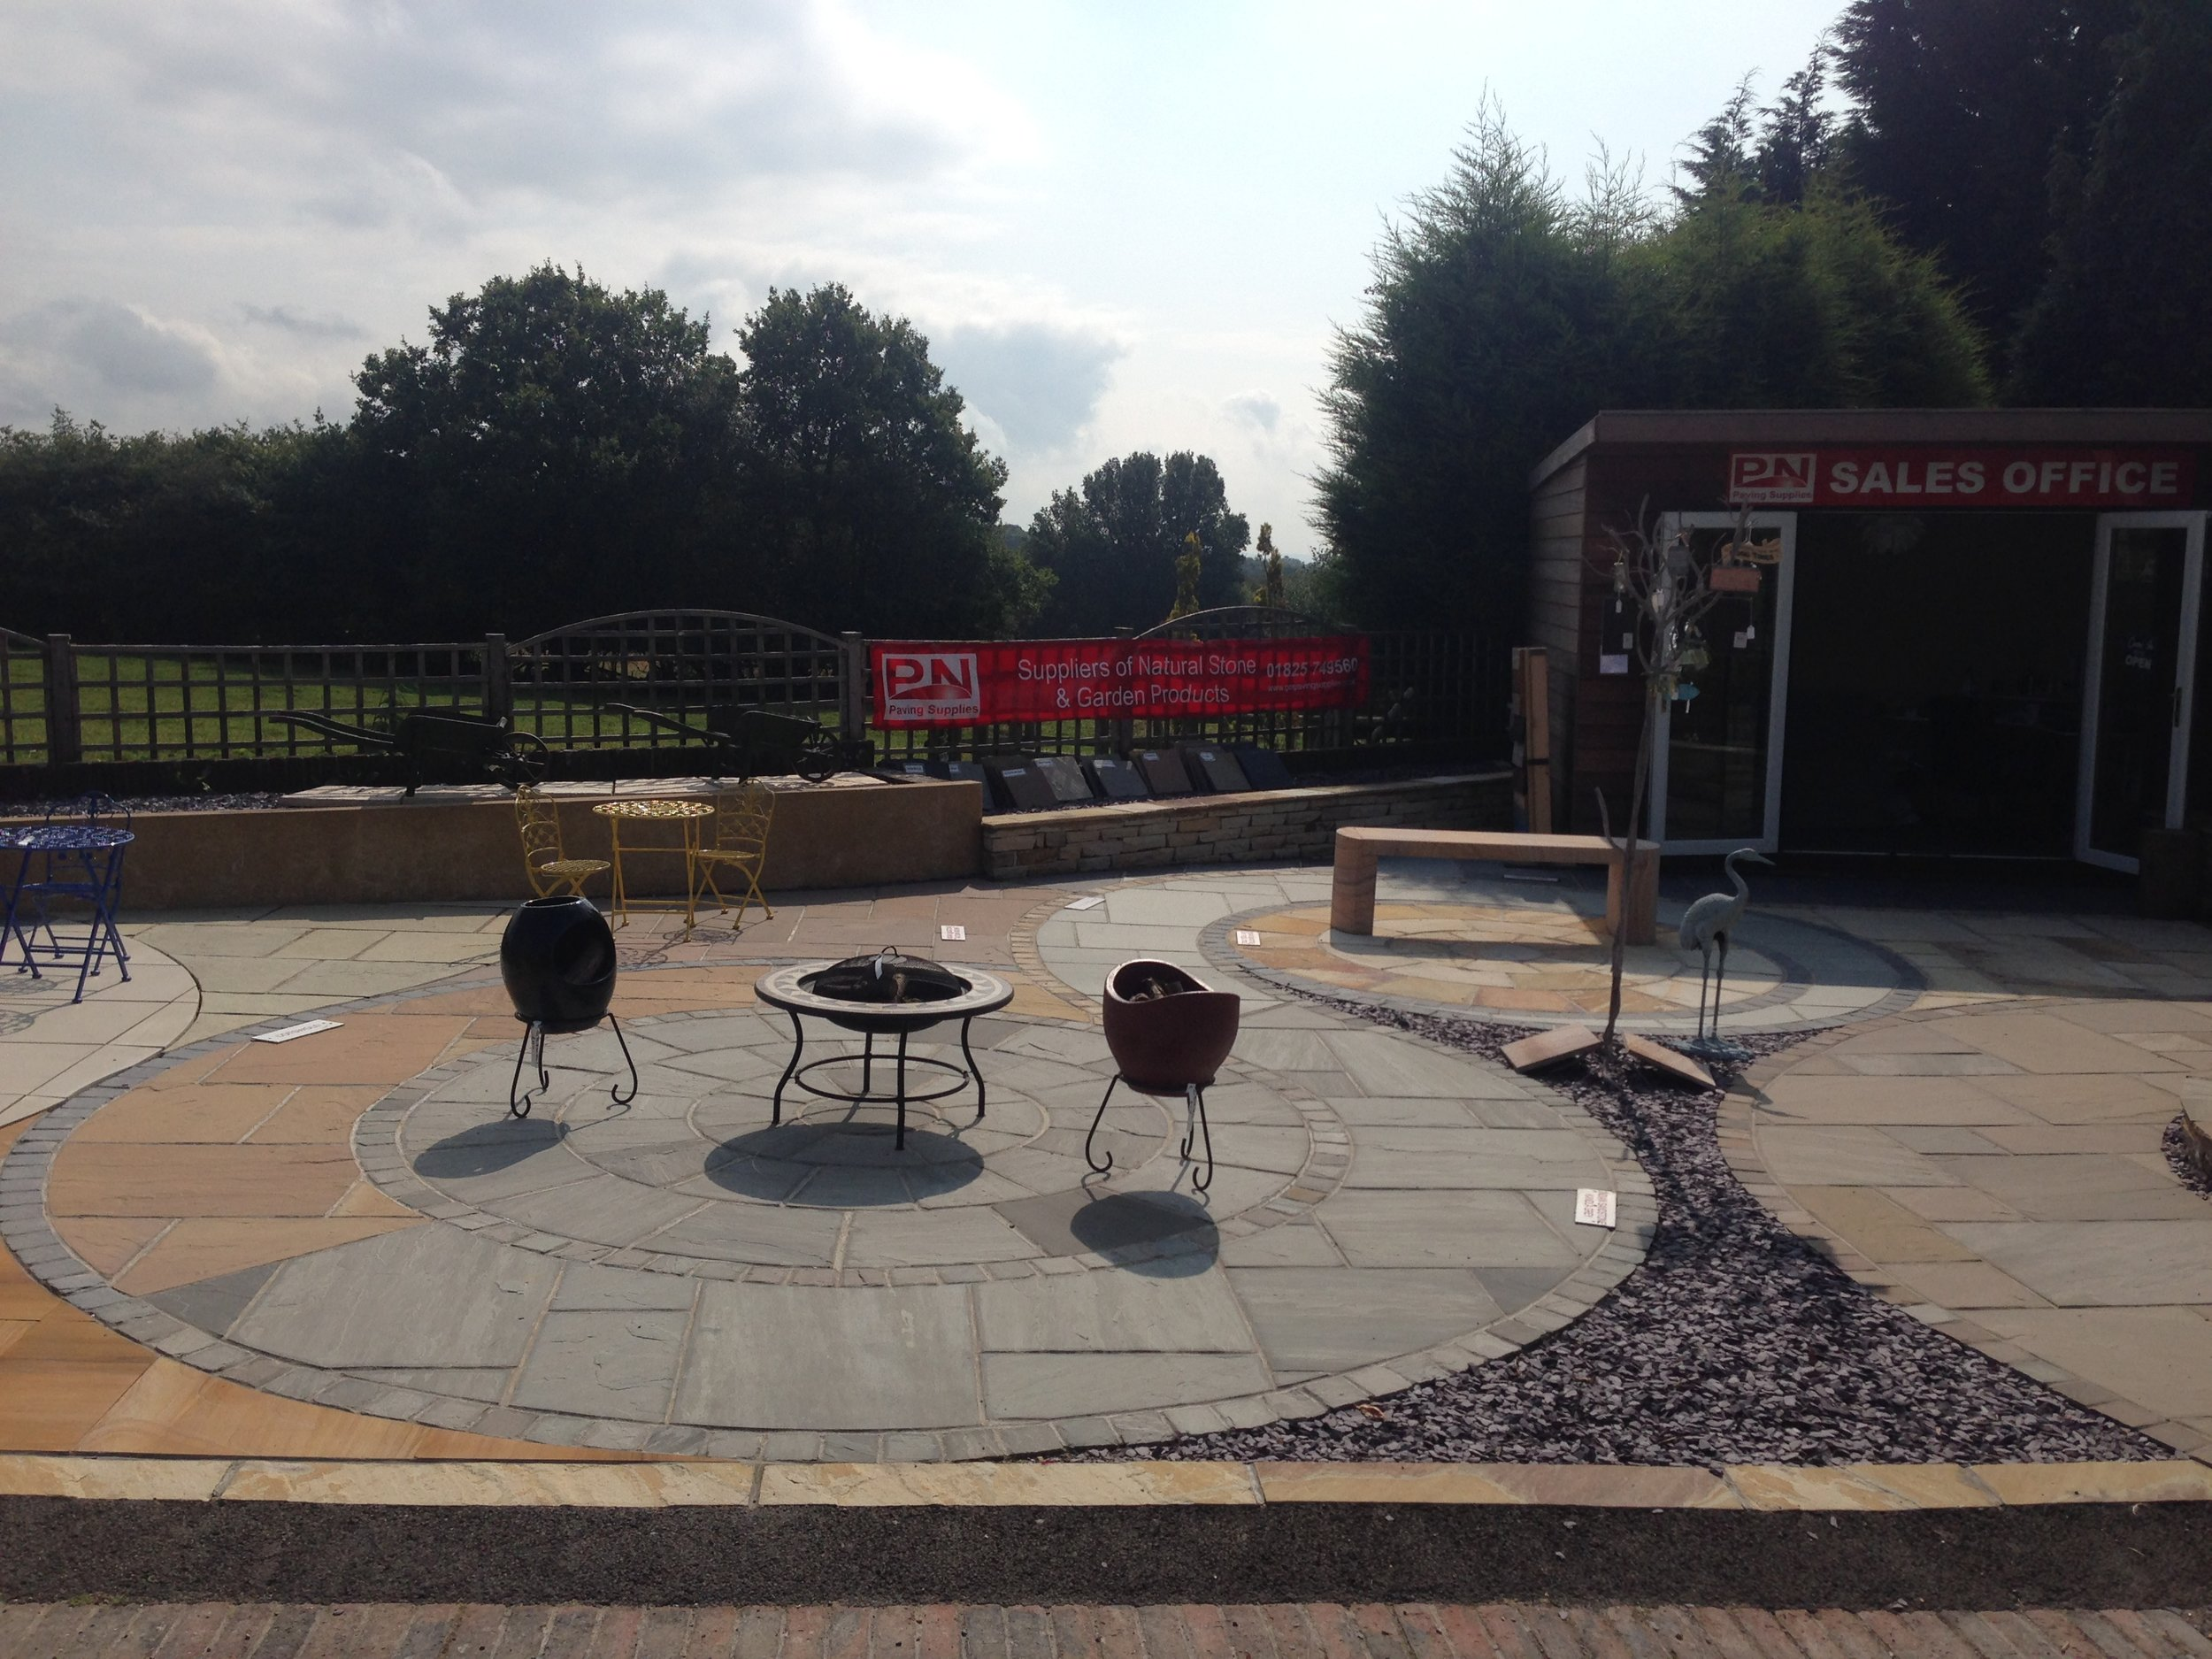 PN Paving Supplies - Click for more information.